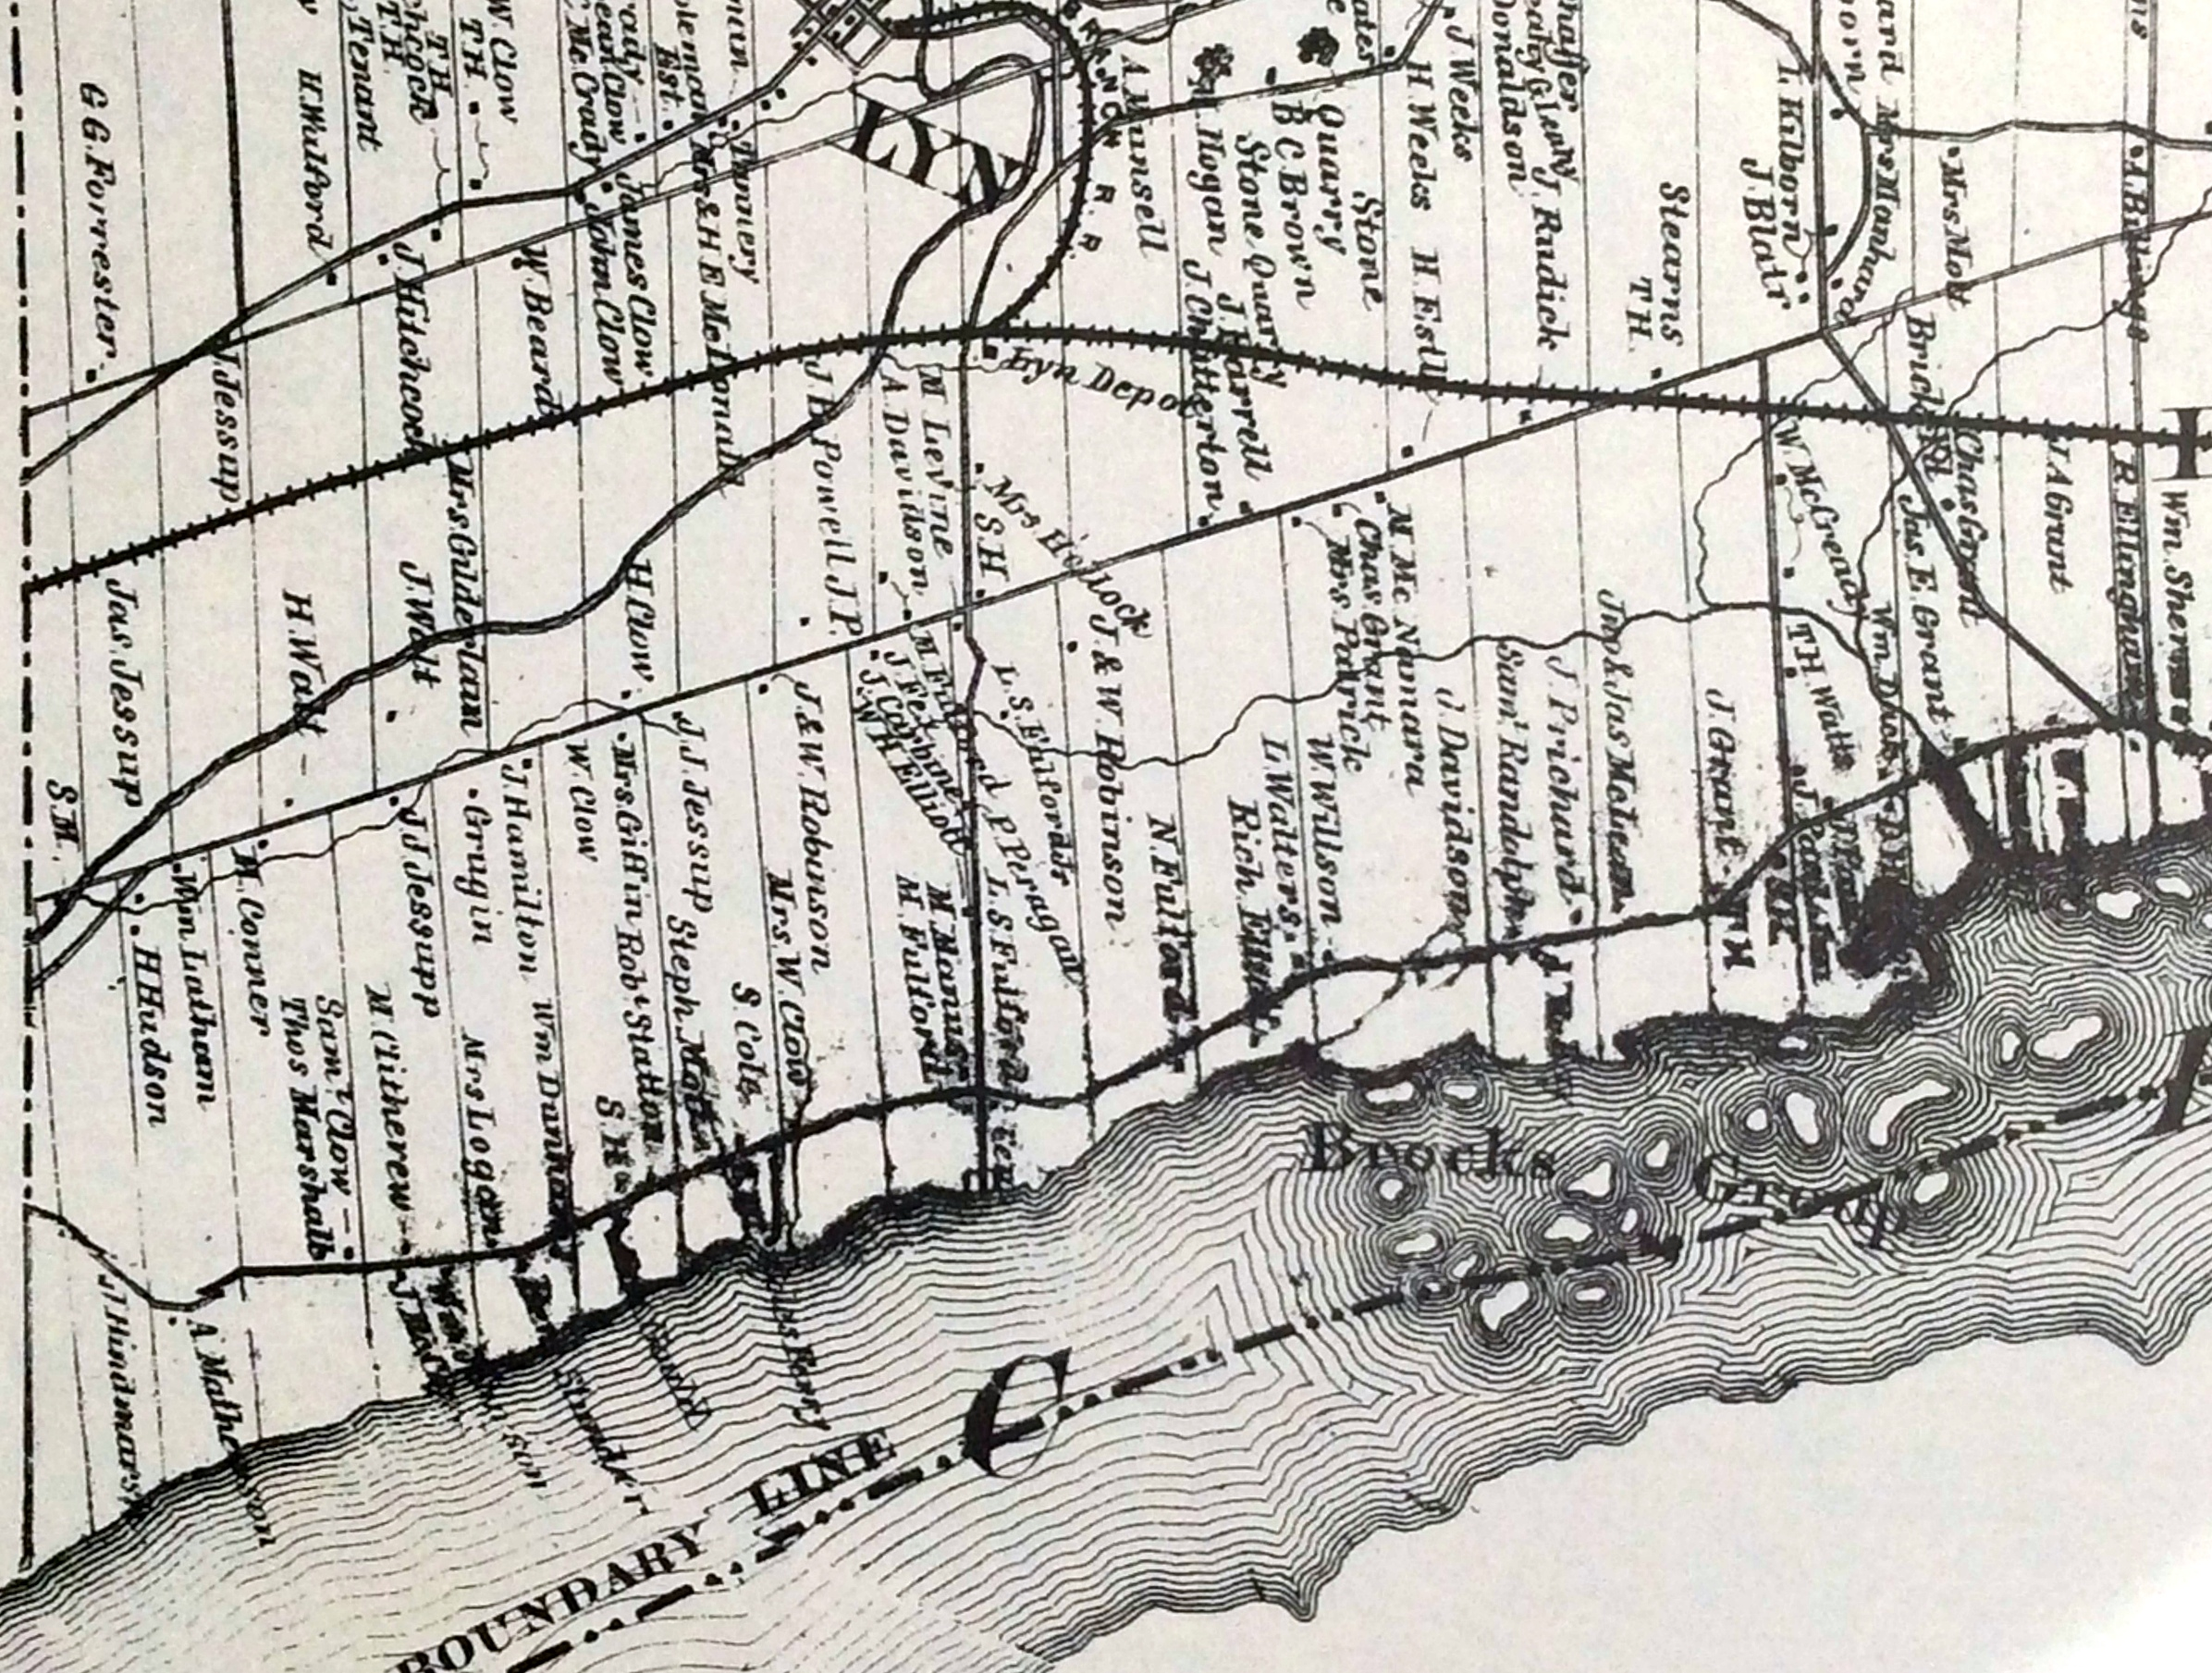 Elizabethtown Township Map of 186162 Heritage Place Museum